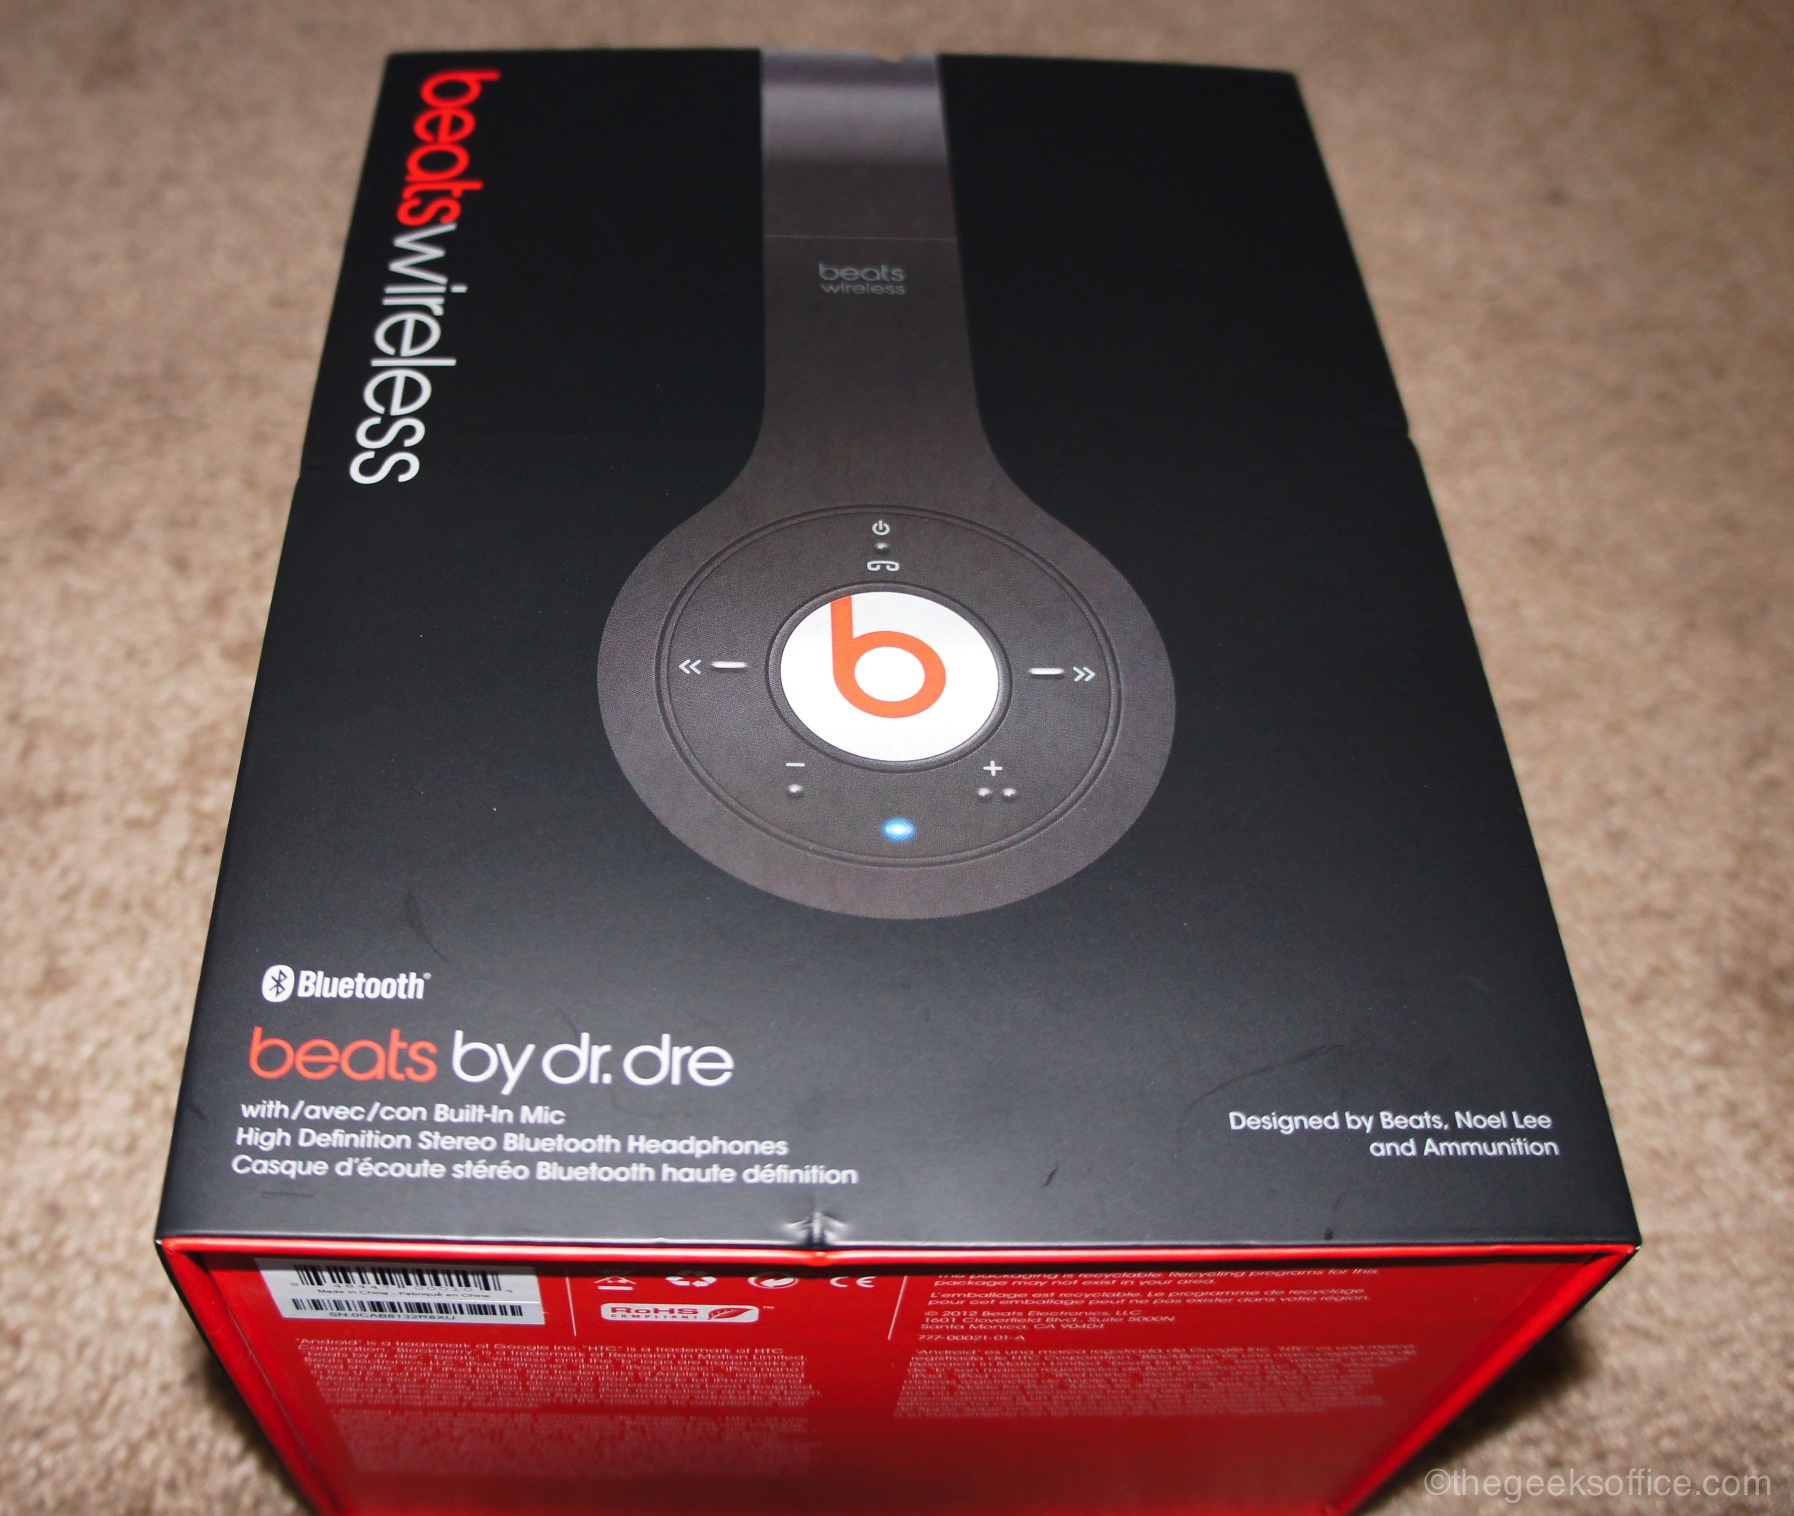 Beats By Dre The Geeks Office